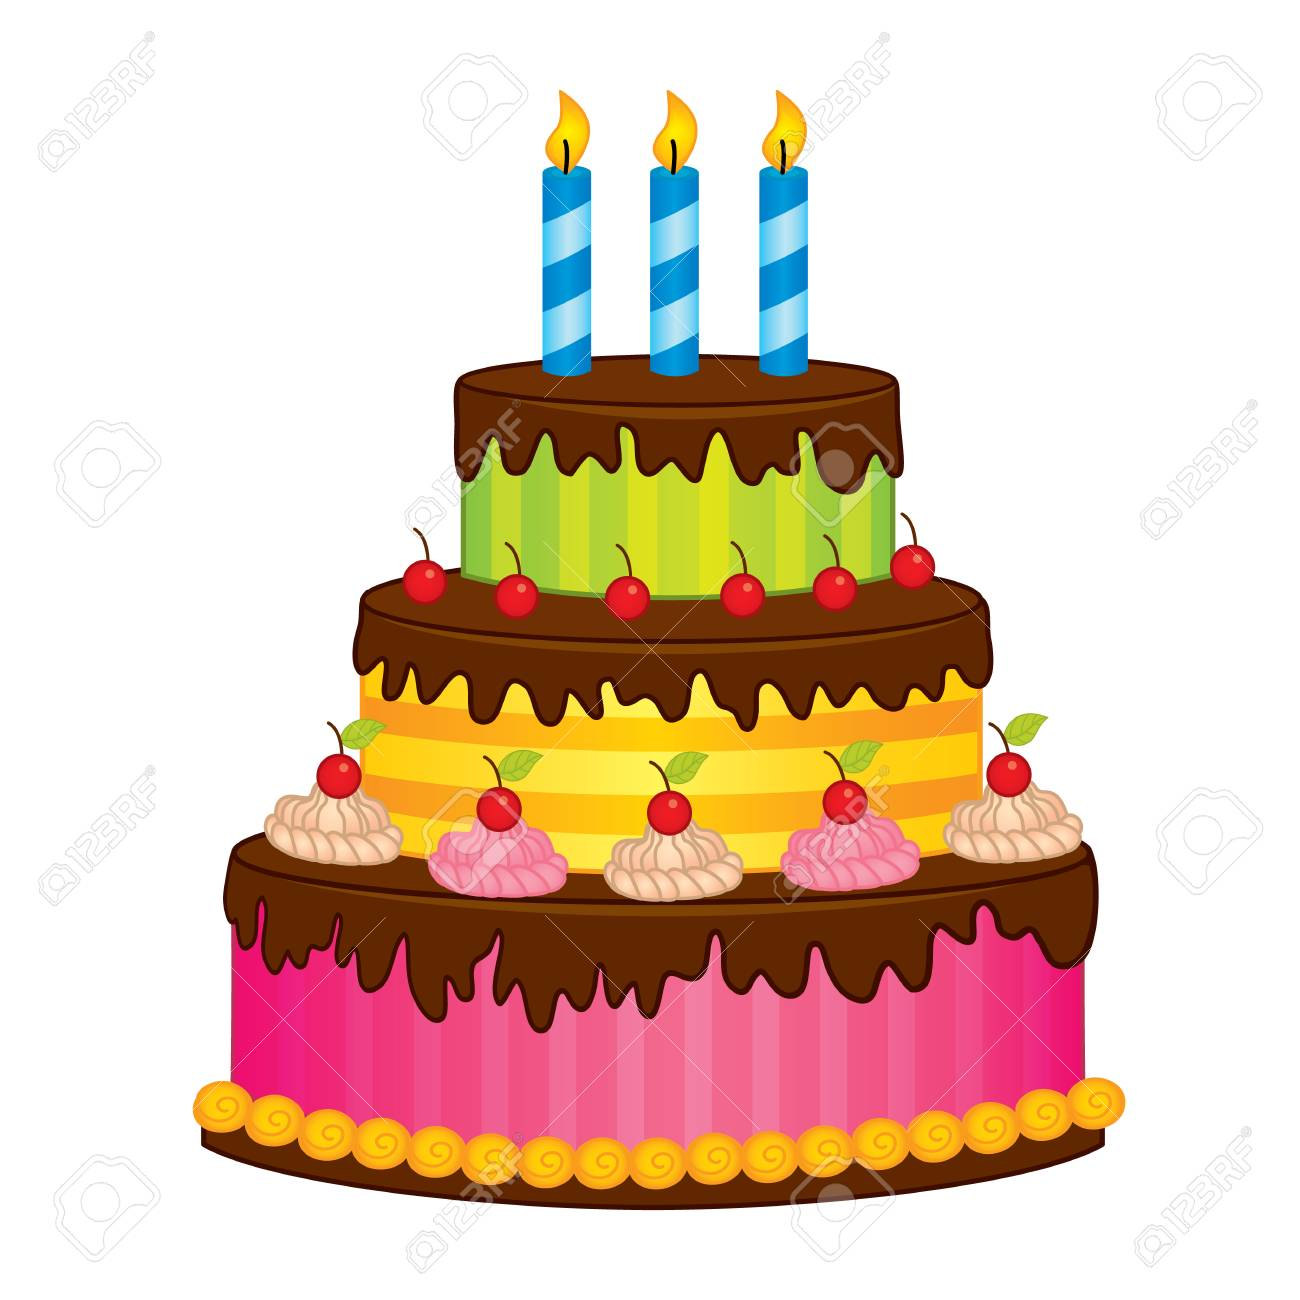 vector birthday cake with candles vector cake decorated with rh 123rf com cake vector freepik cake vector free